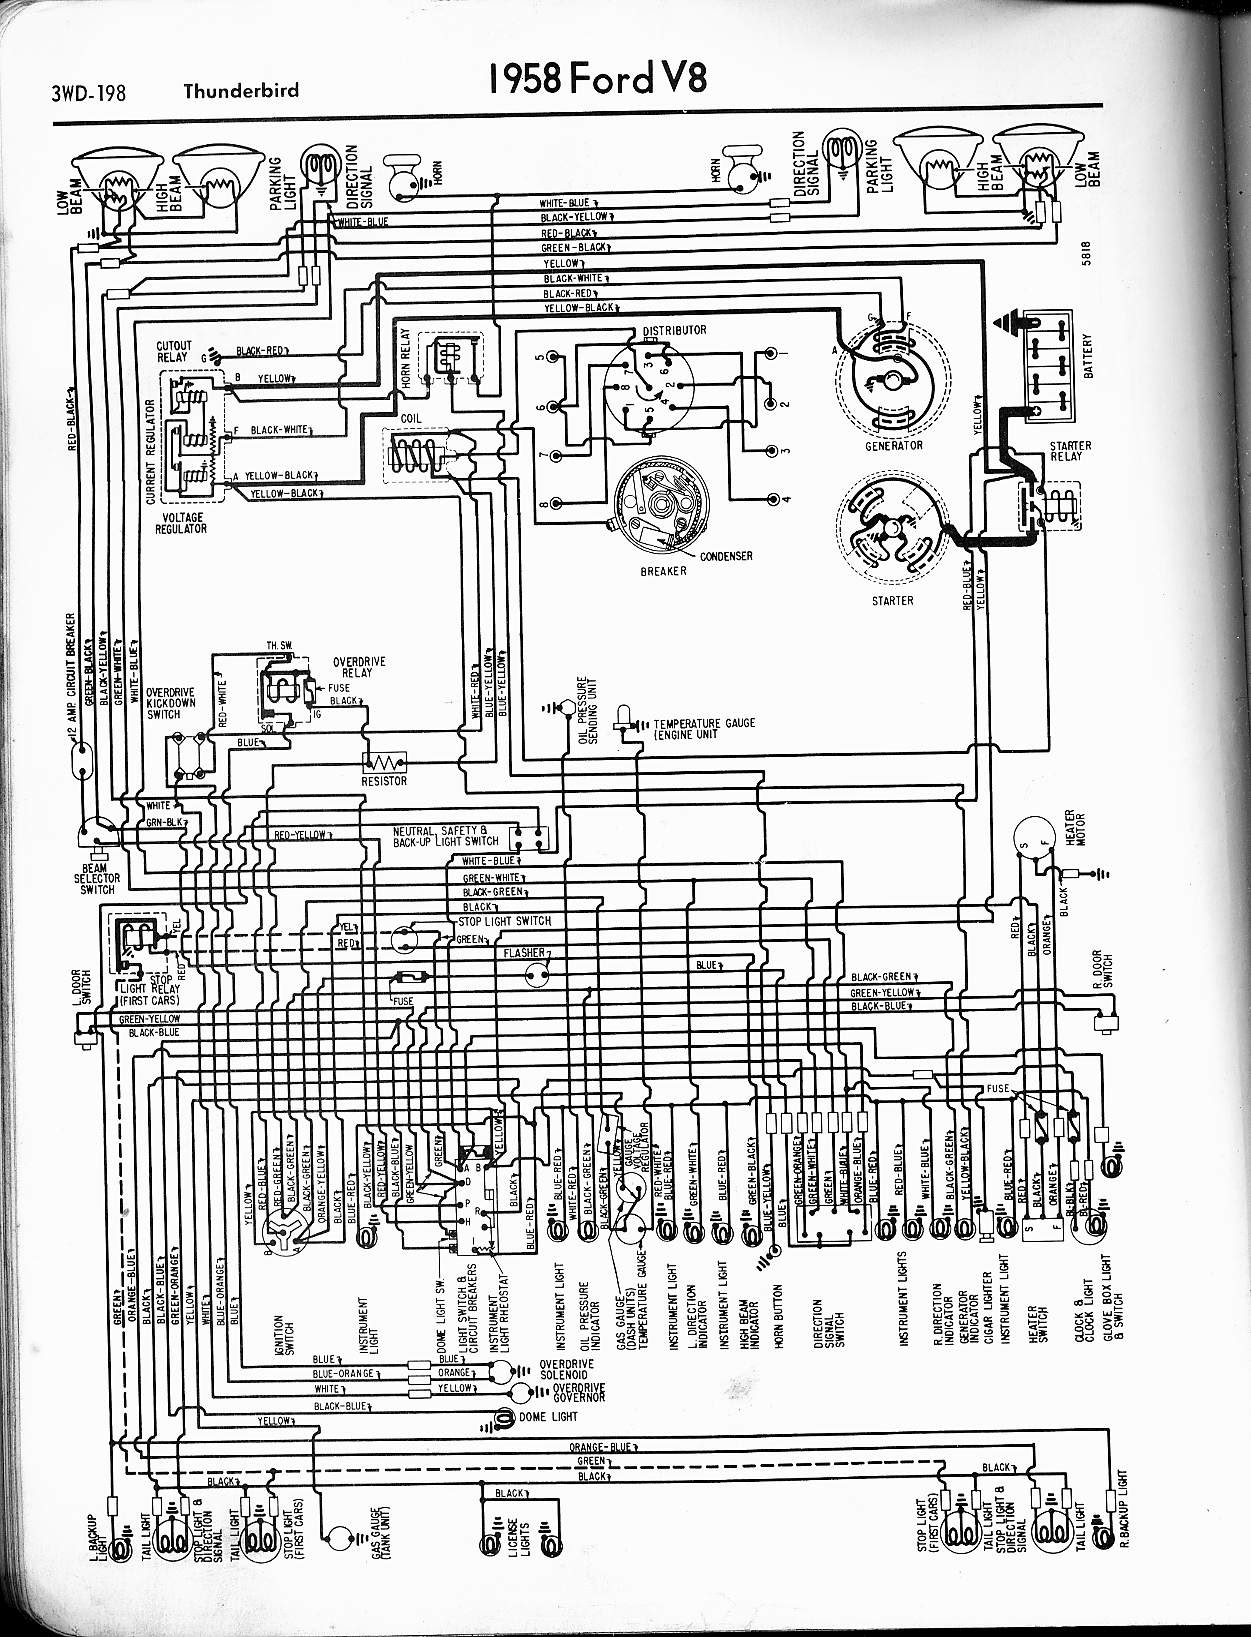 1977 Ford Custom 500 Wiring Diagram Wiring Diagram Series Series Pasticceriagele It